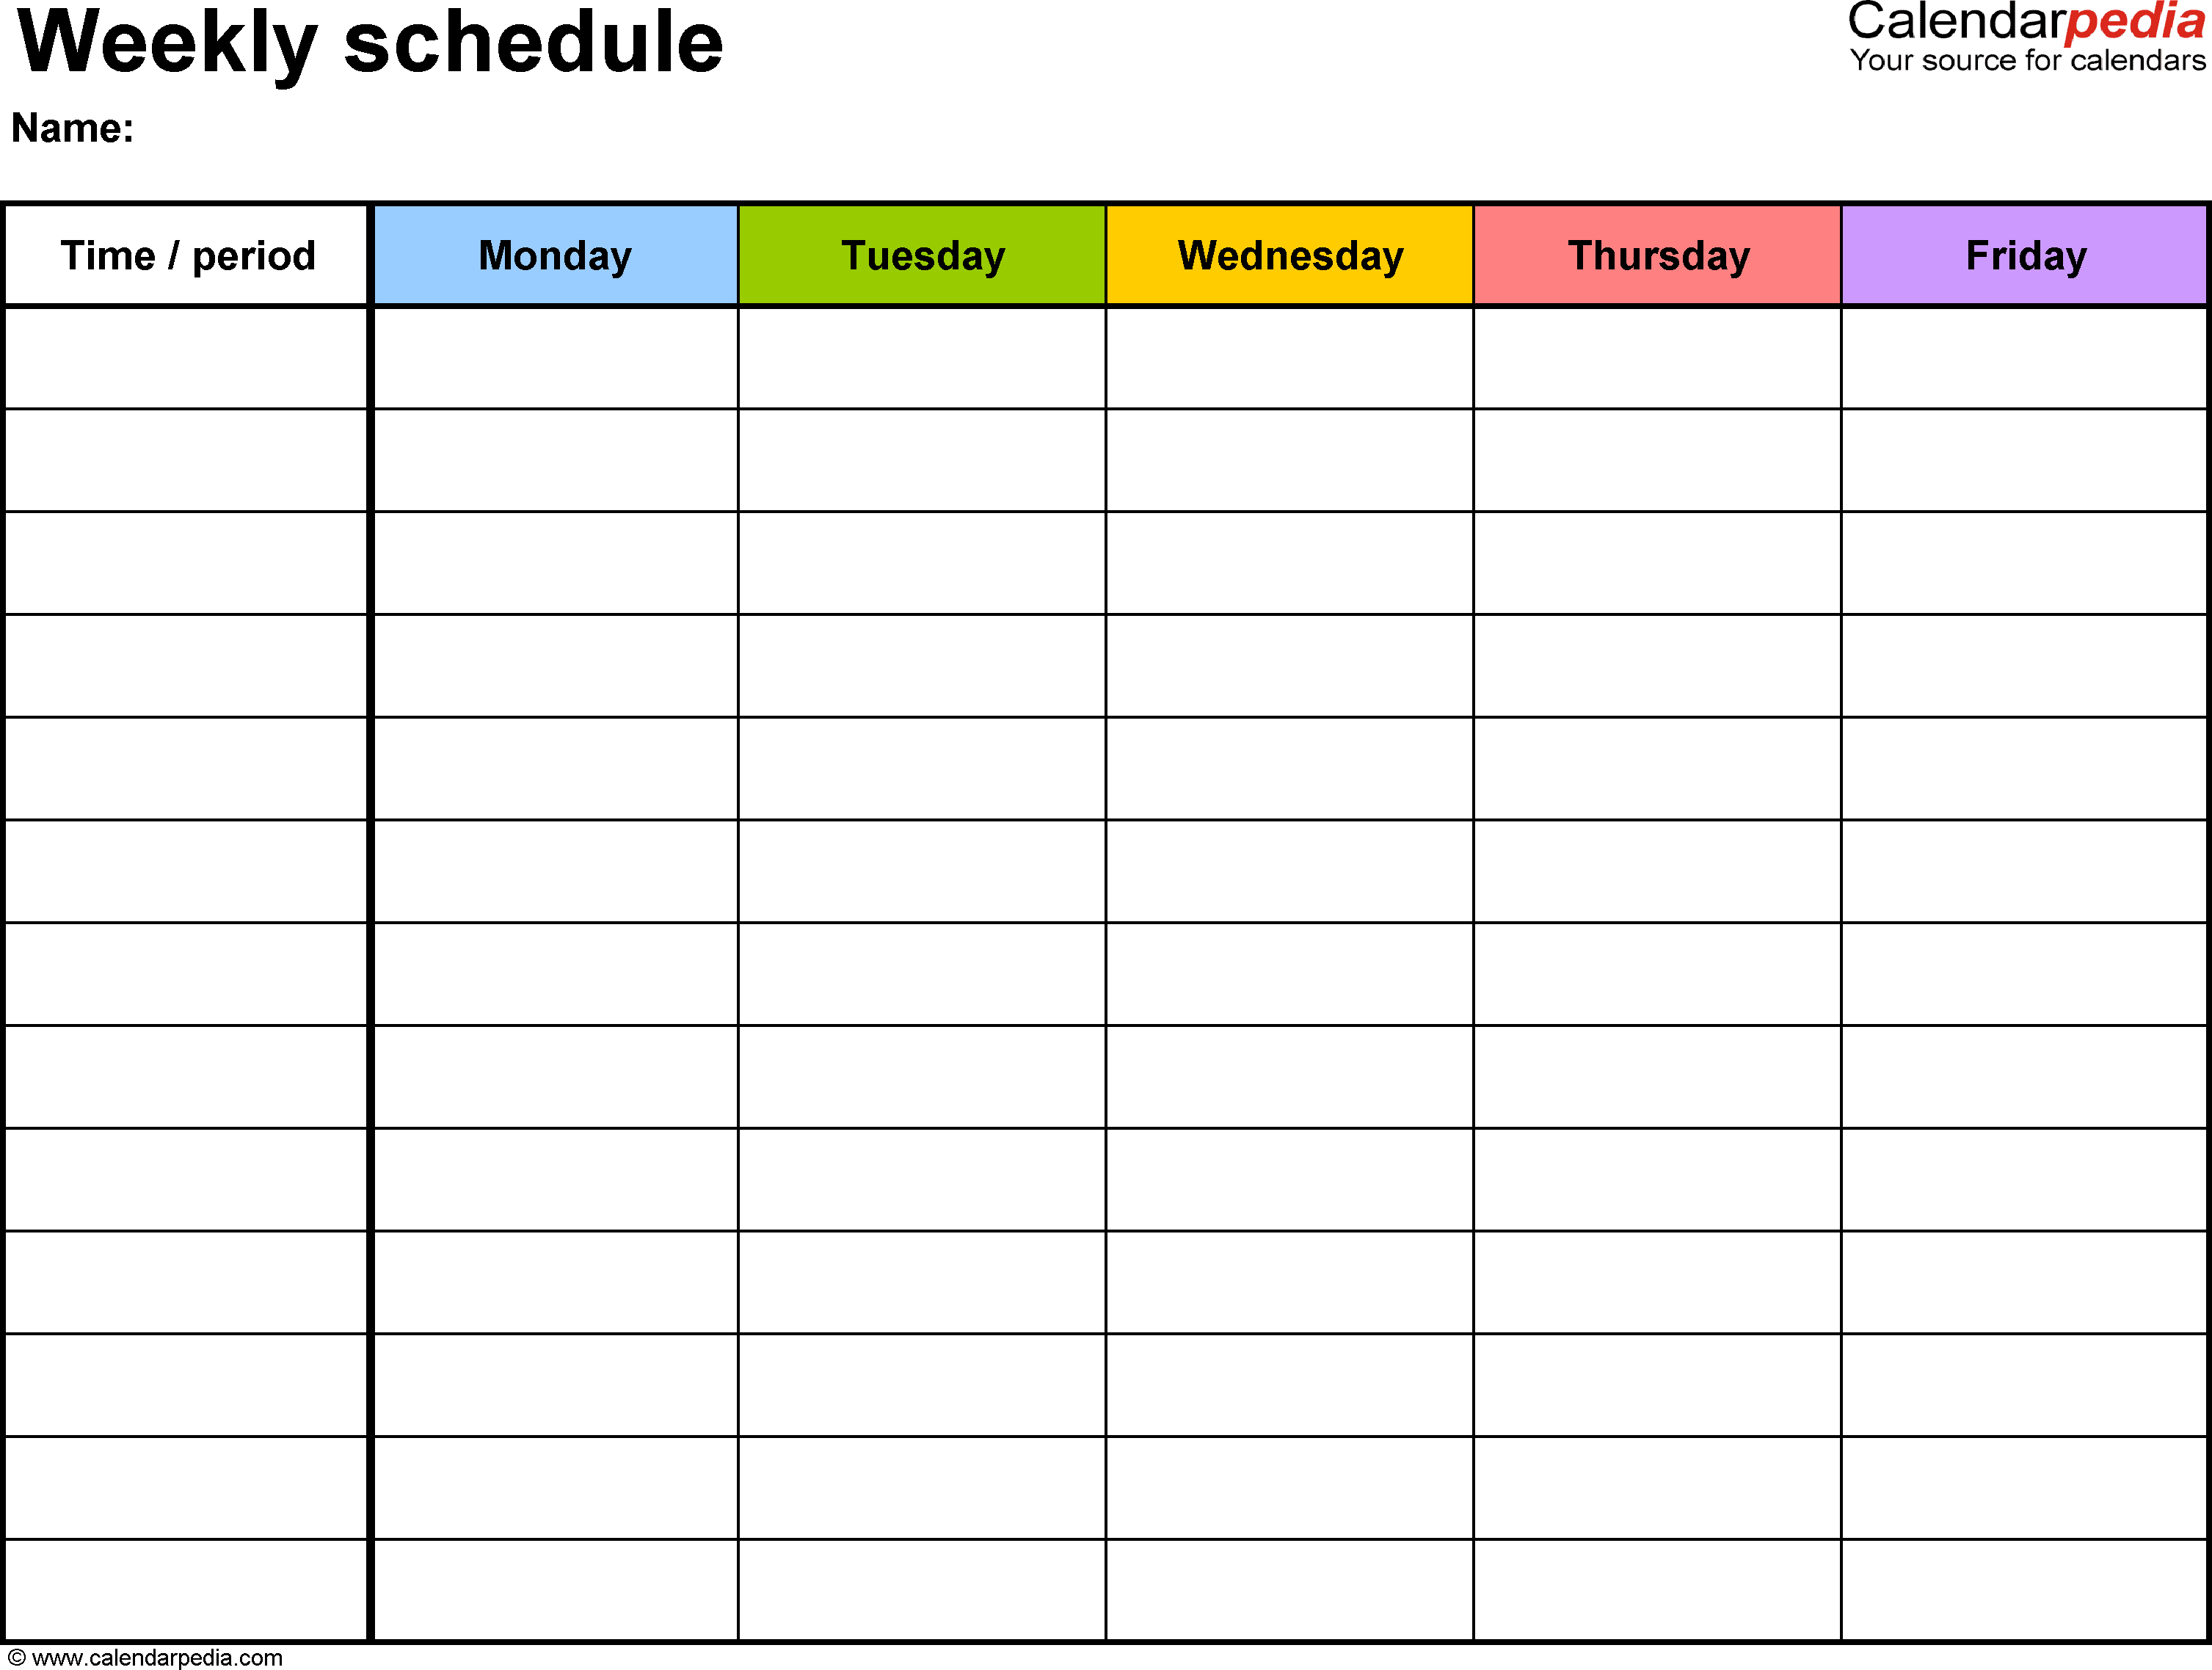 Free Weekly Schedule Templates For Excel - 18 Templates Throughout Monthly Employee Schedule Template Free